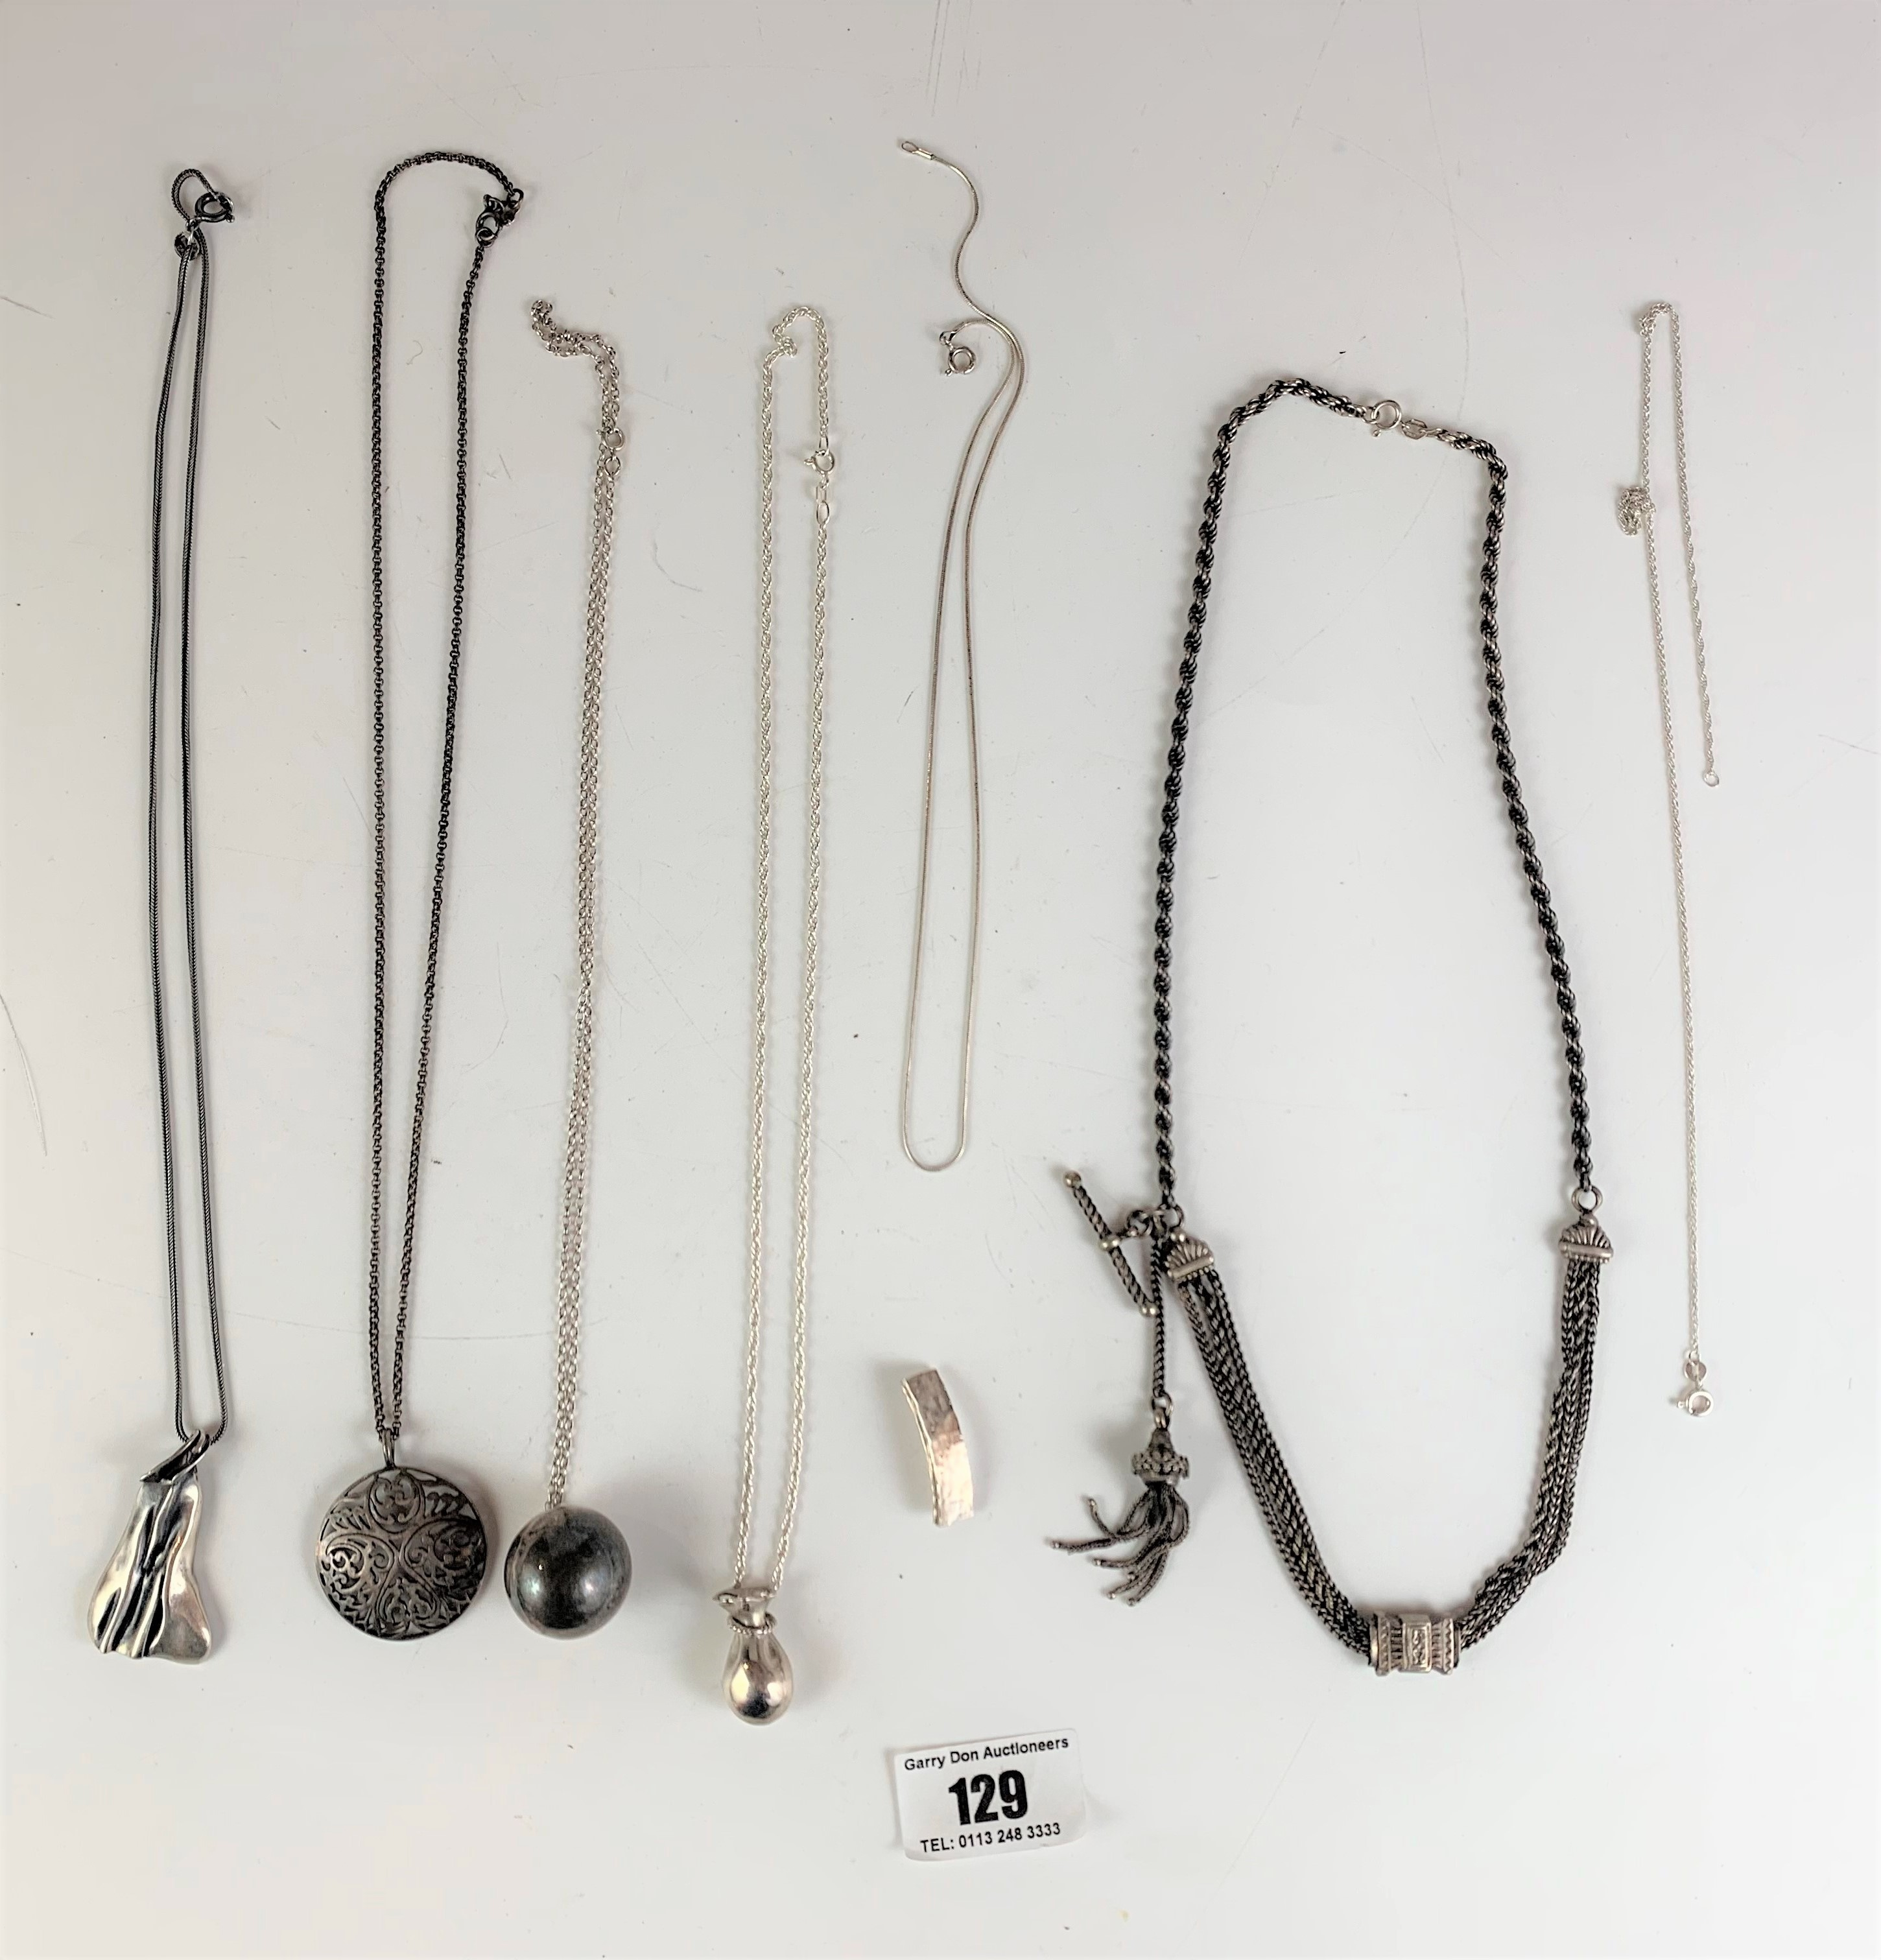 7 assorted silver necklaces and pendants, total w: 2.4 ozt - Image 2 of 6